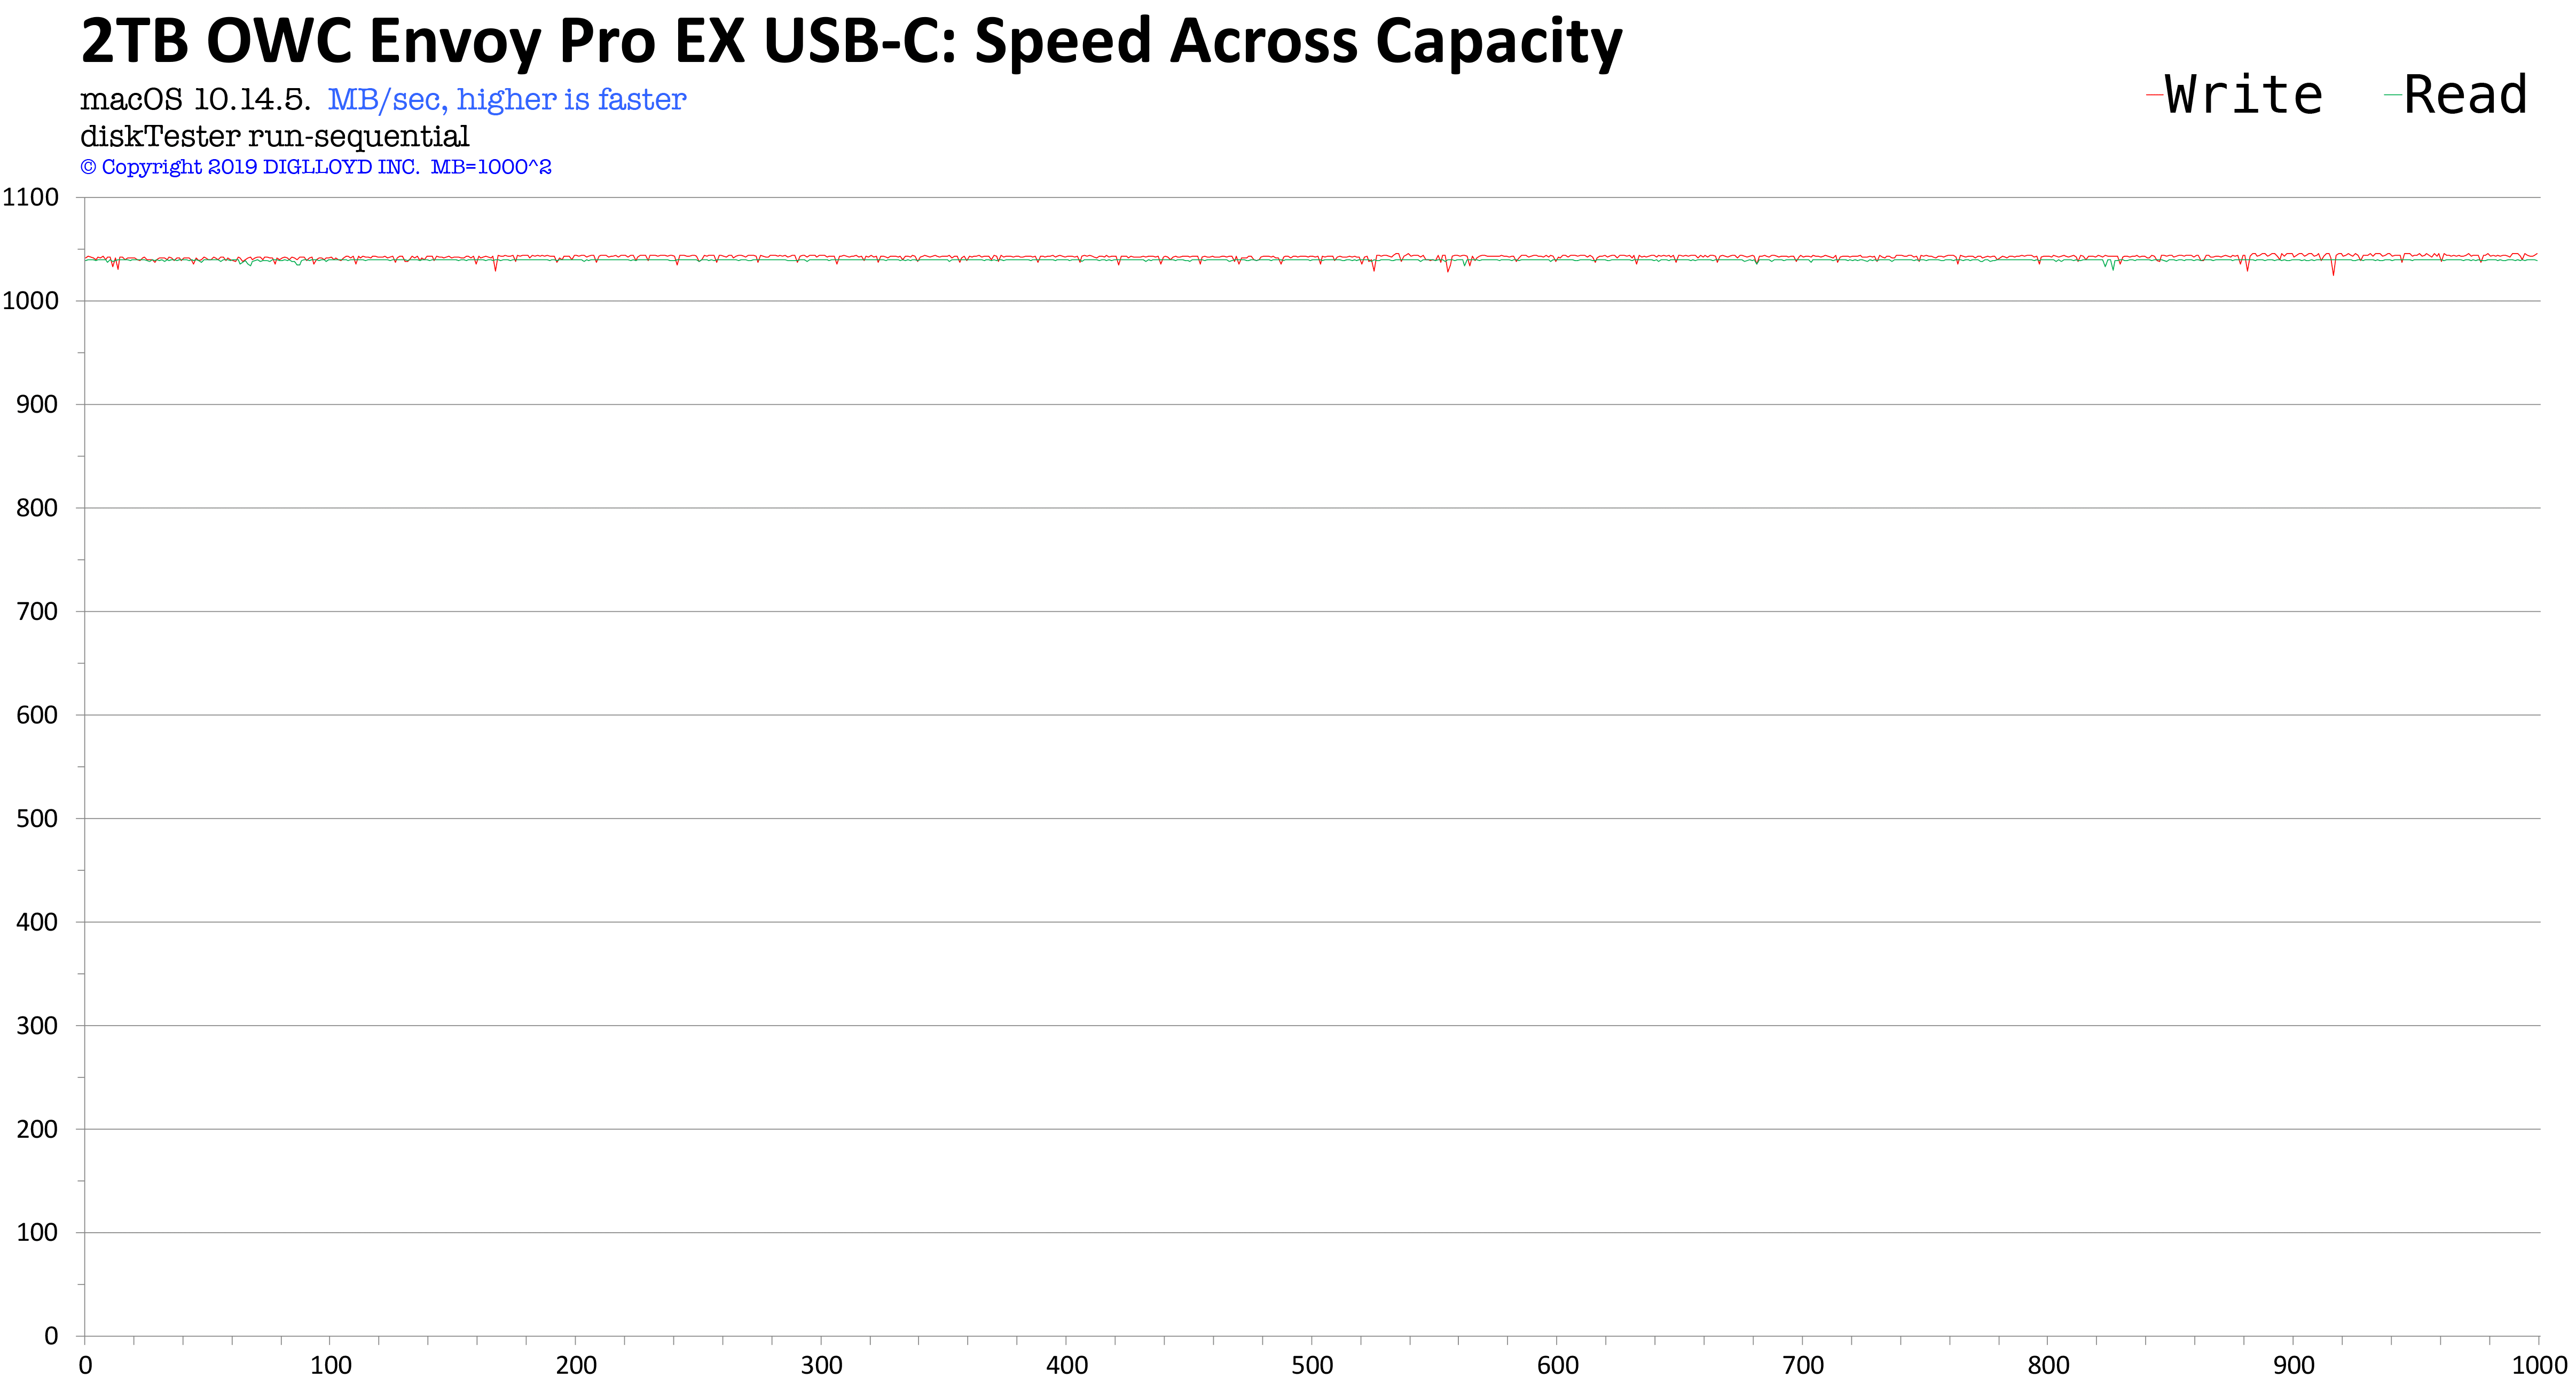 Graph showing OWC Envoy Pro EX USB-C Speed Across Capacity